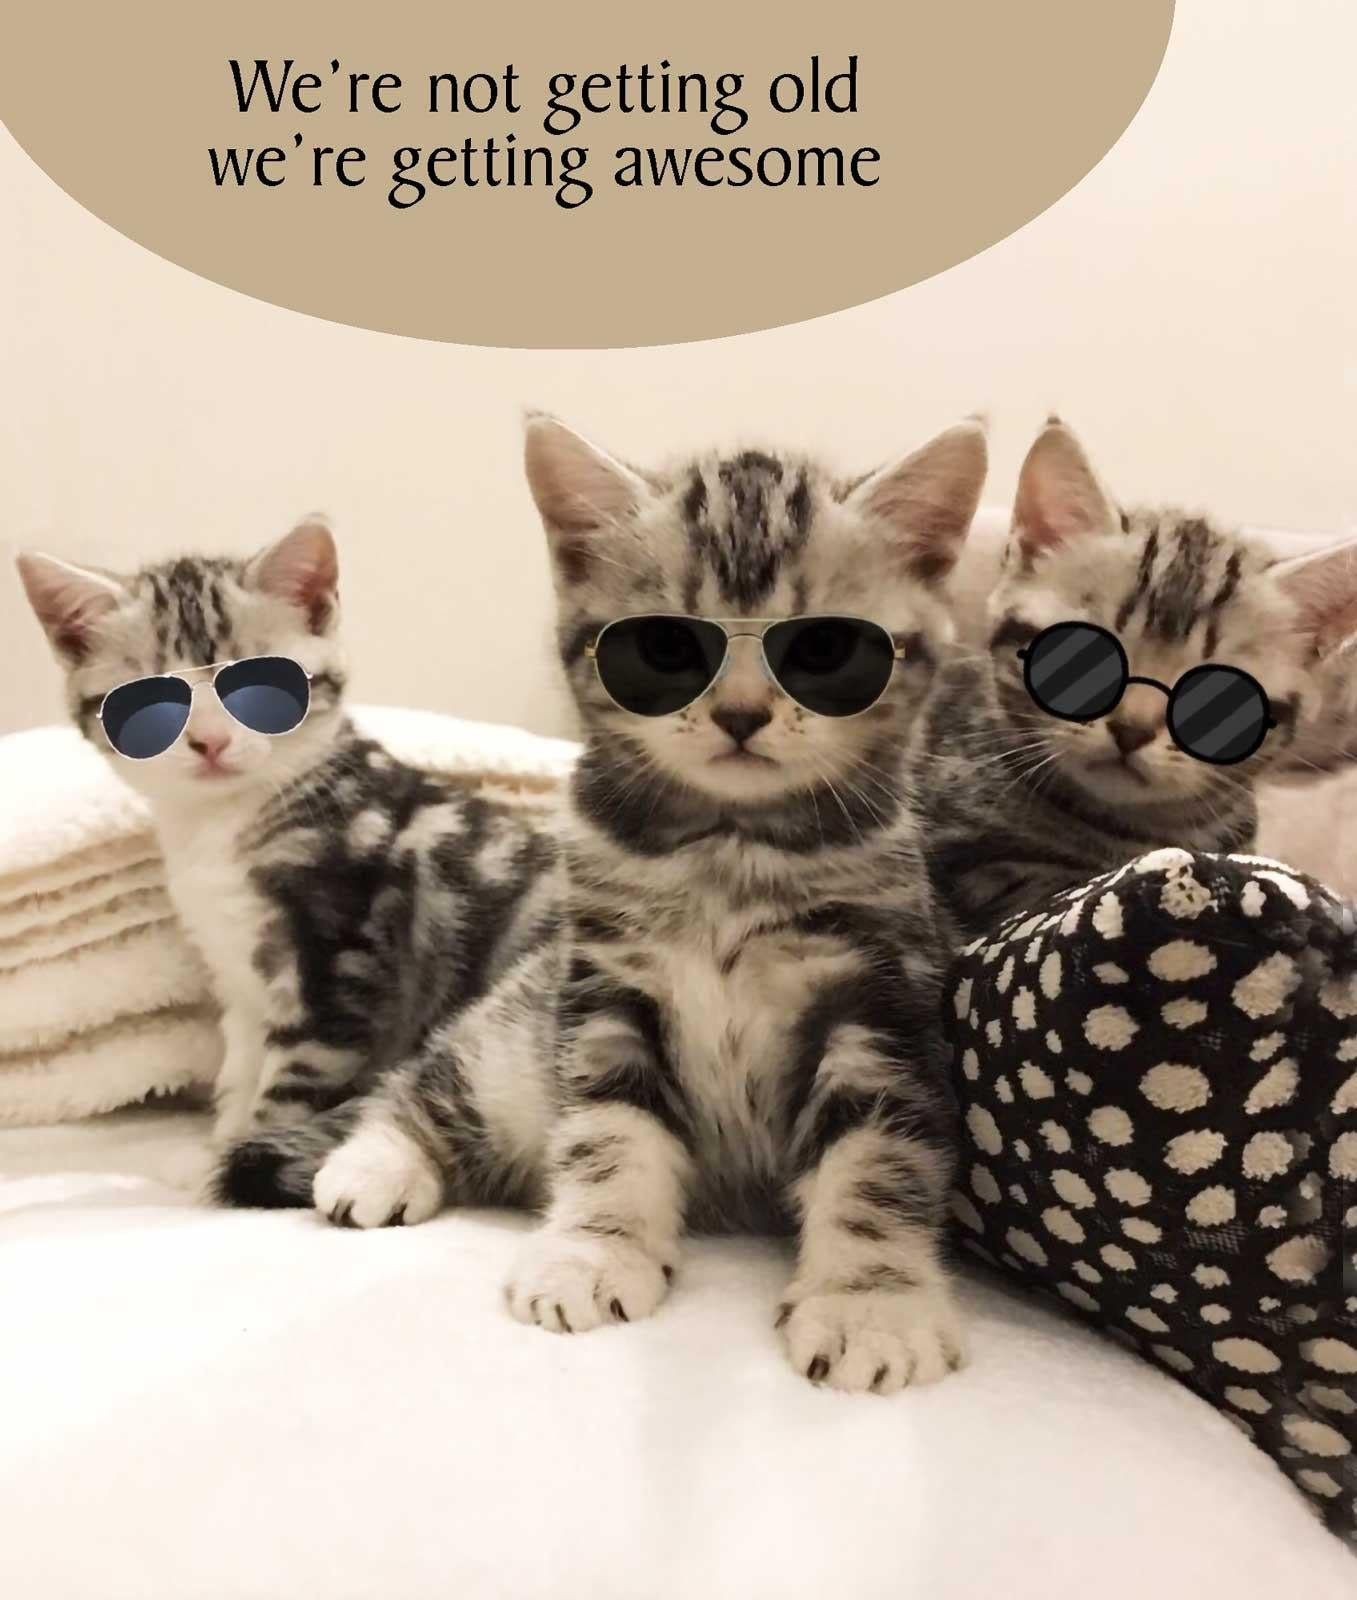 Getting Awesome Cat Birthday Card